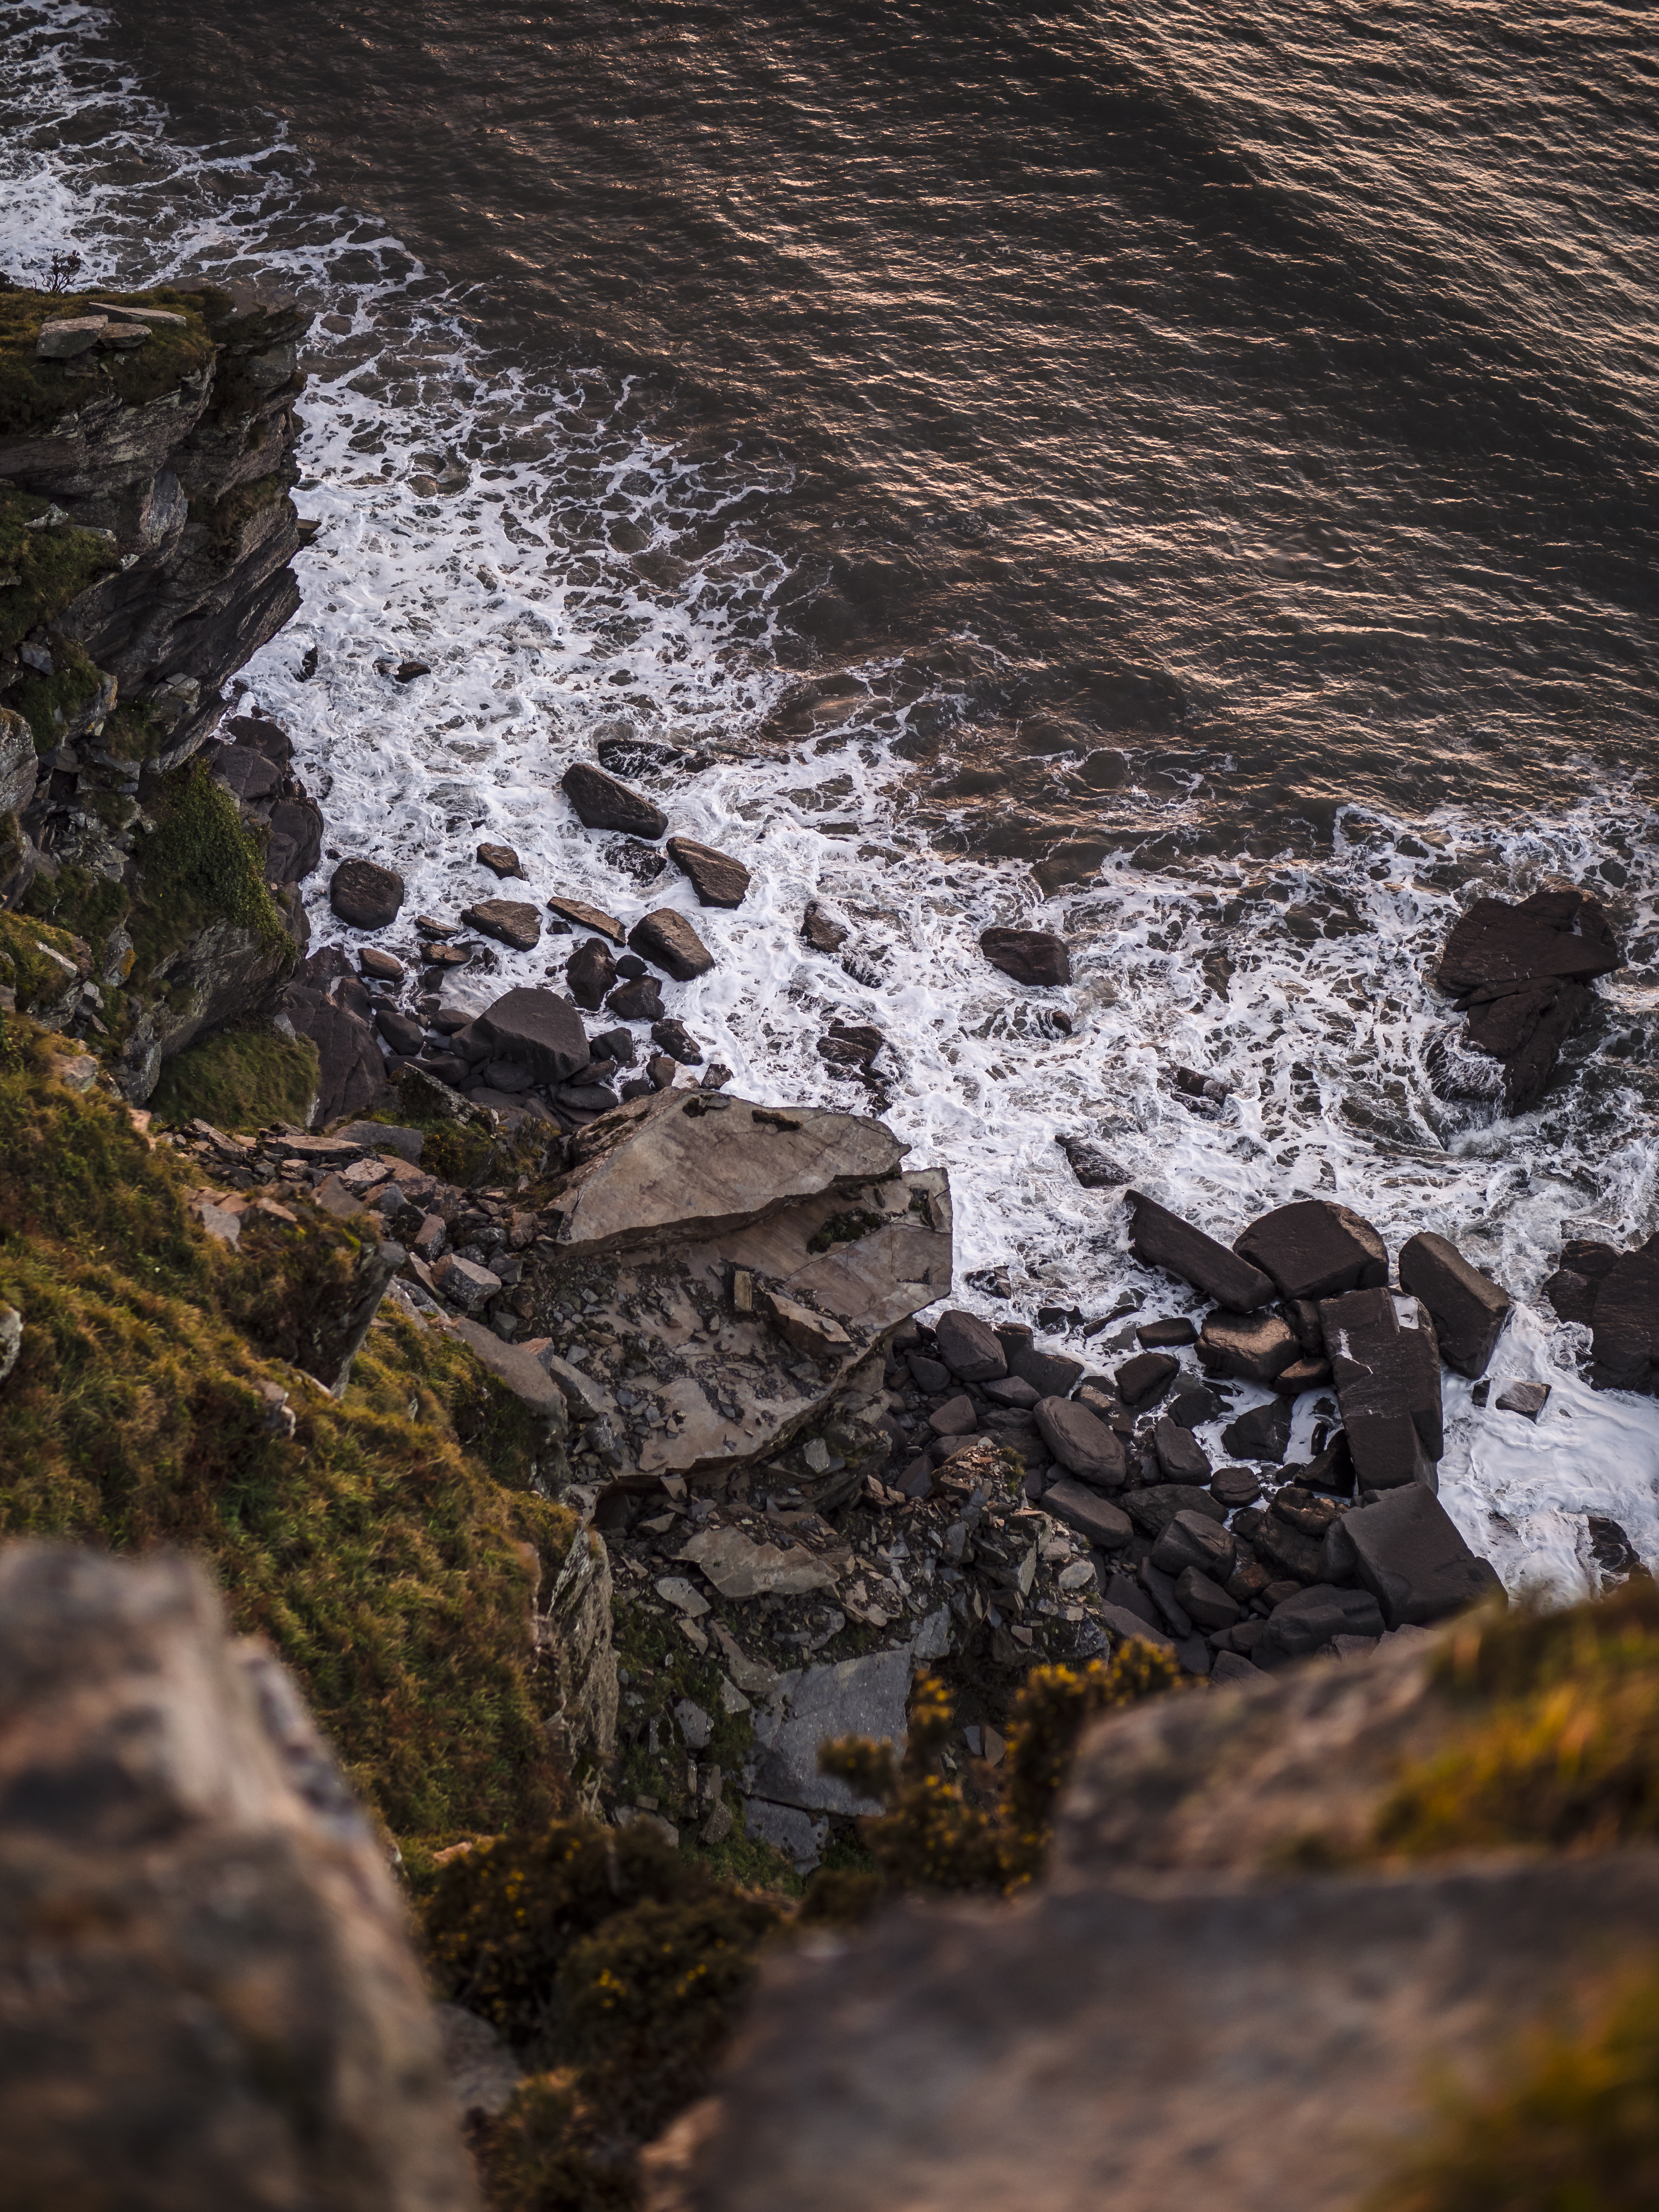 rocky-shore-with-rocky-shore-during-daytime